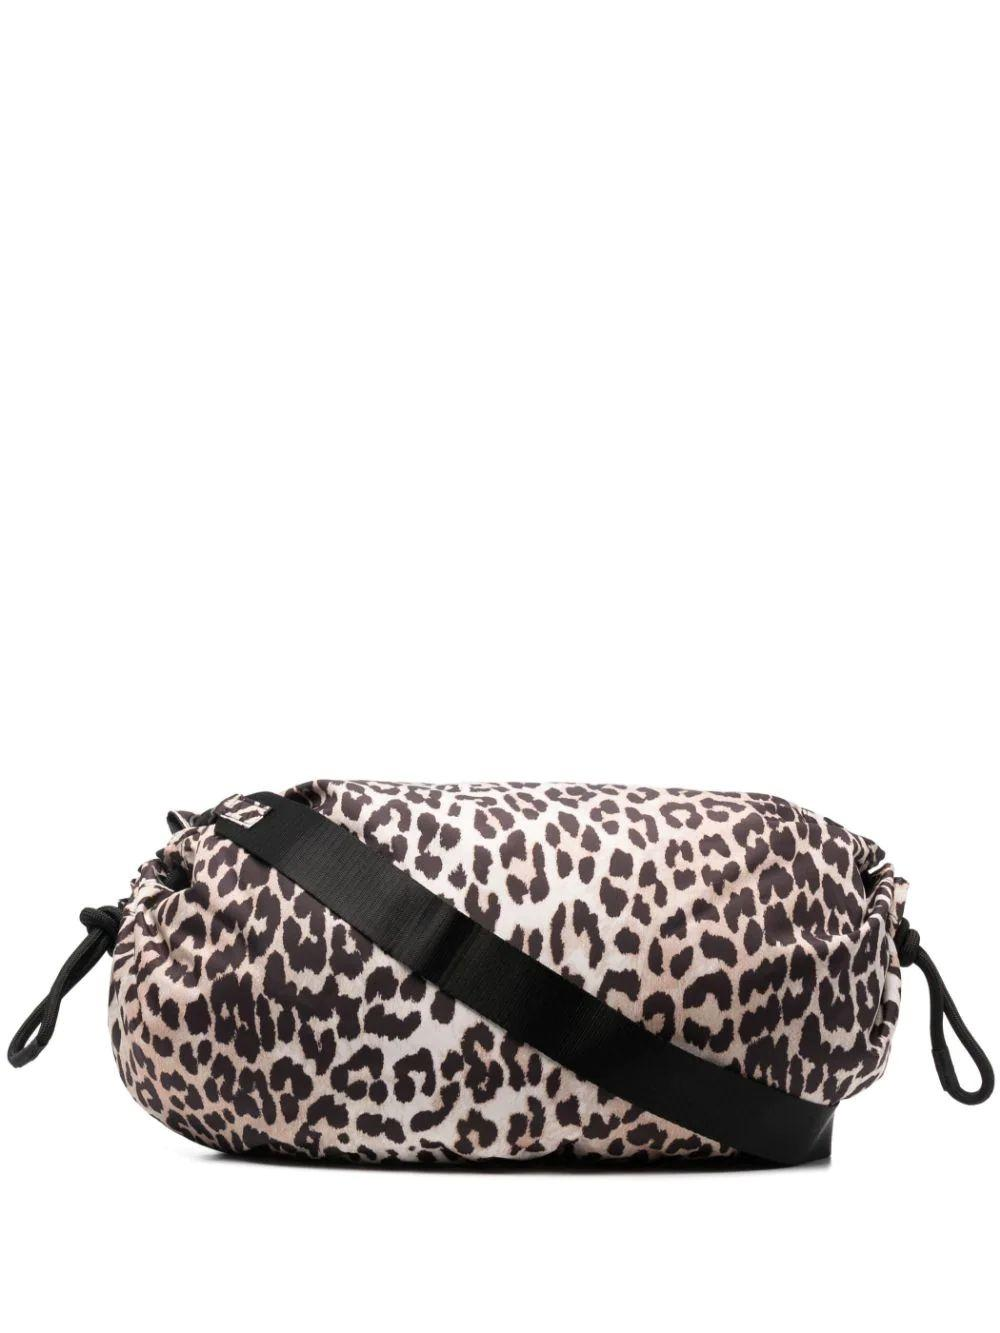 Recycled Tech Fabric Leopard Print Bag